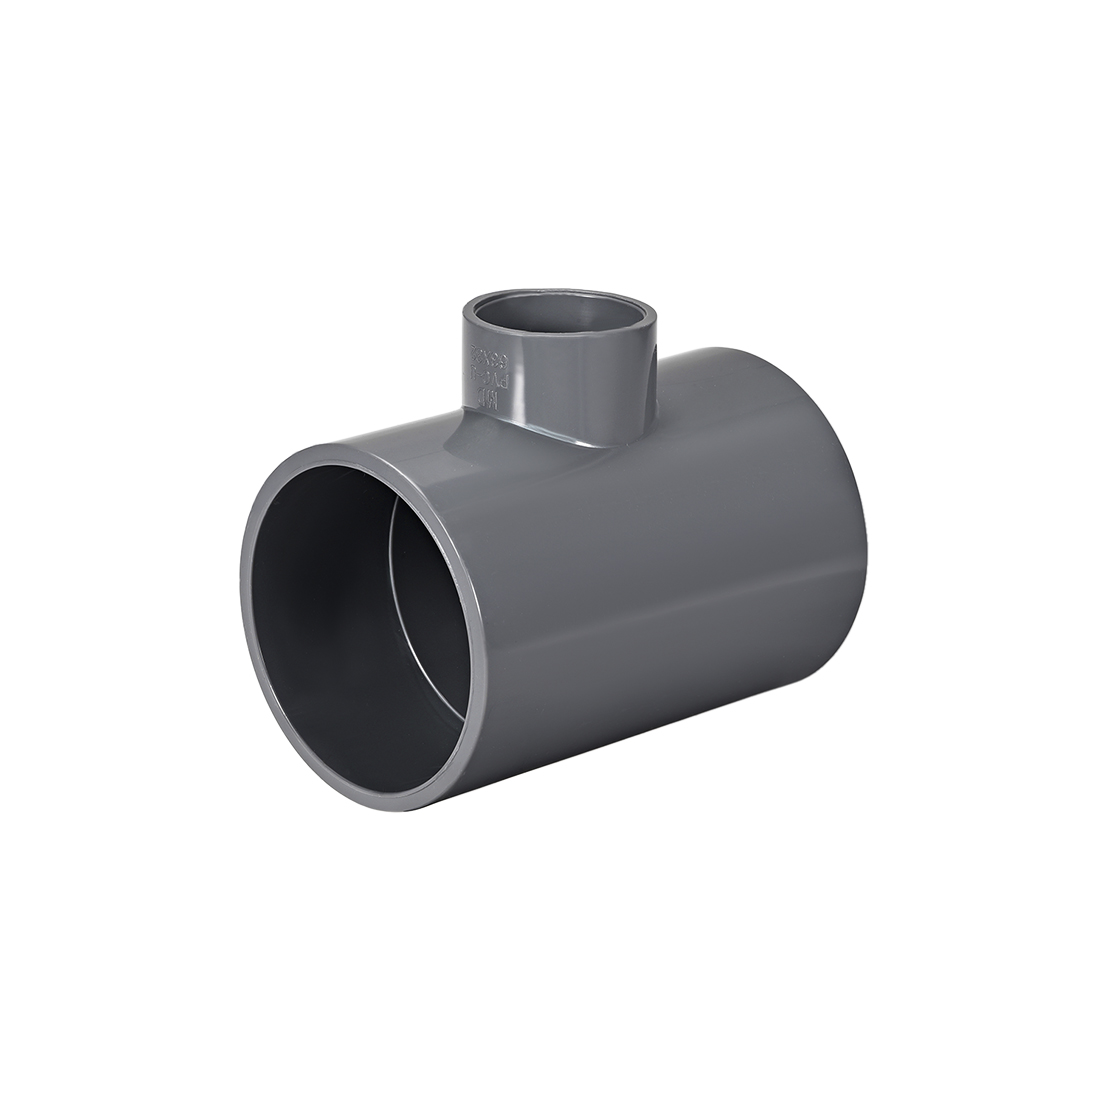 PVC Pipe Fitting Tee 401-Series Gray 1-1/4inch x 2-1/2inch Socket